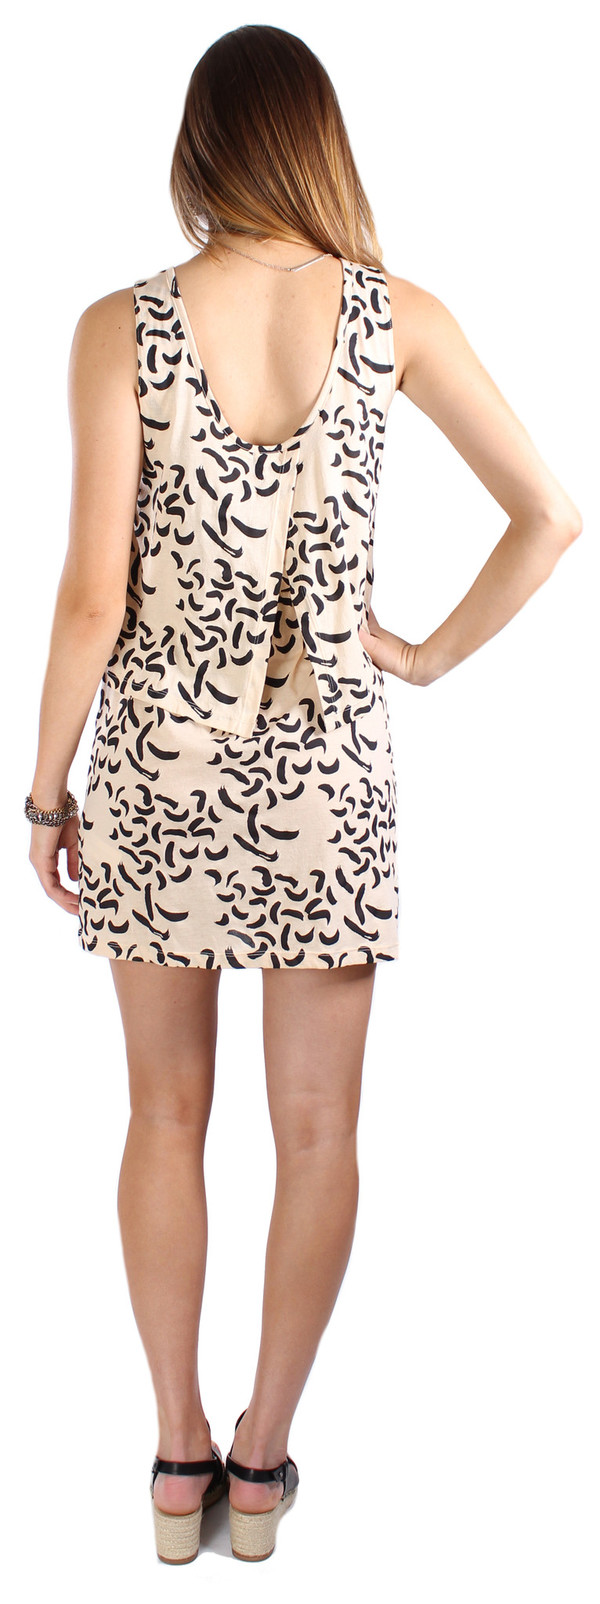 Hoss Intropia Print Dress